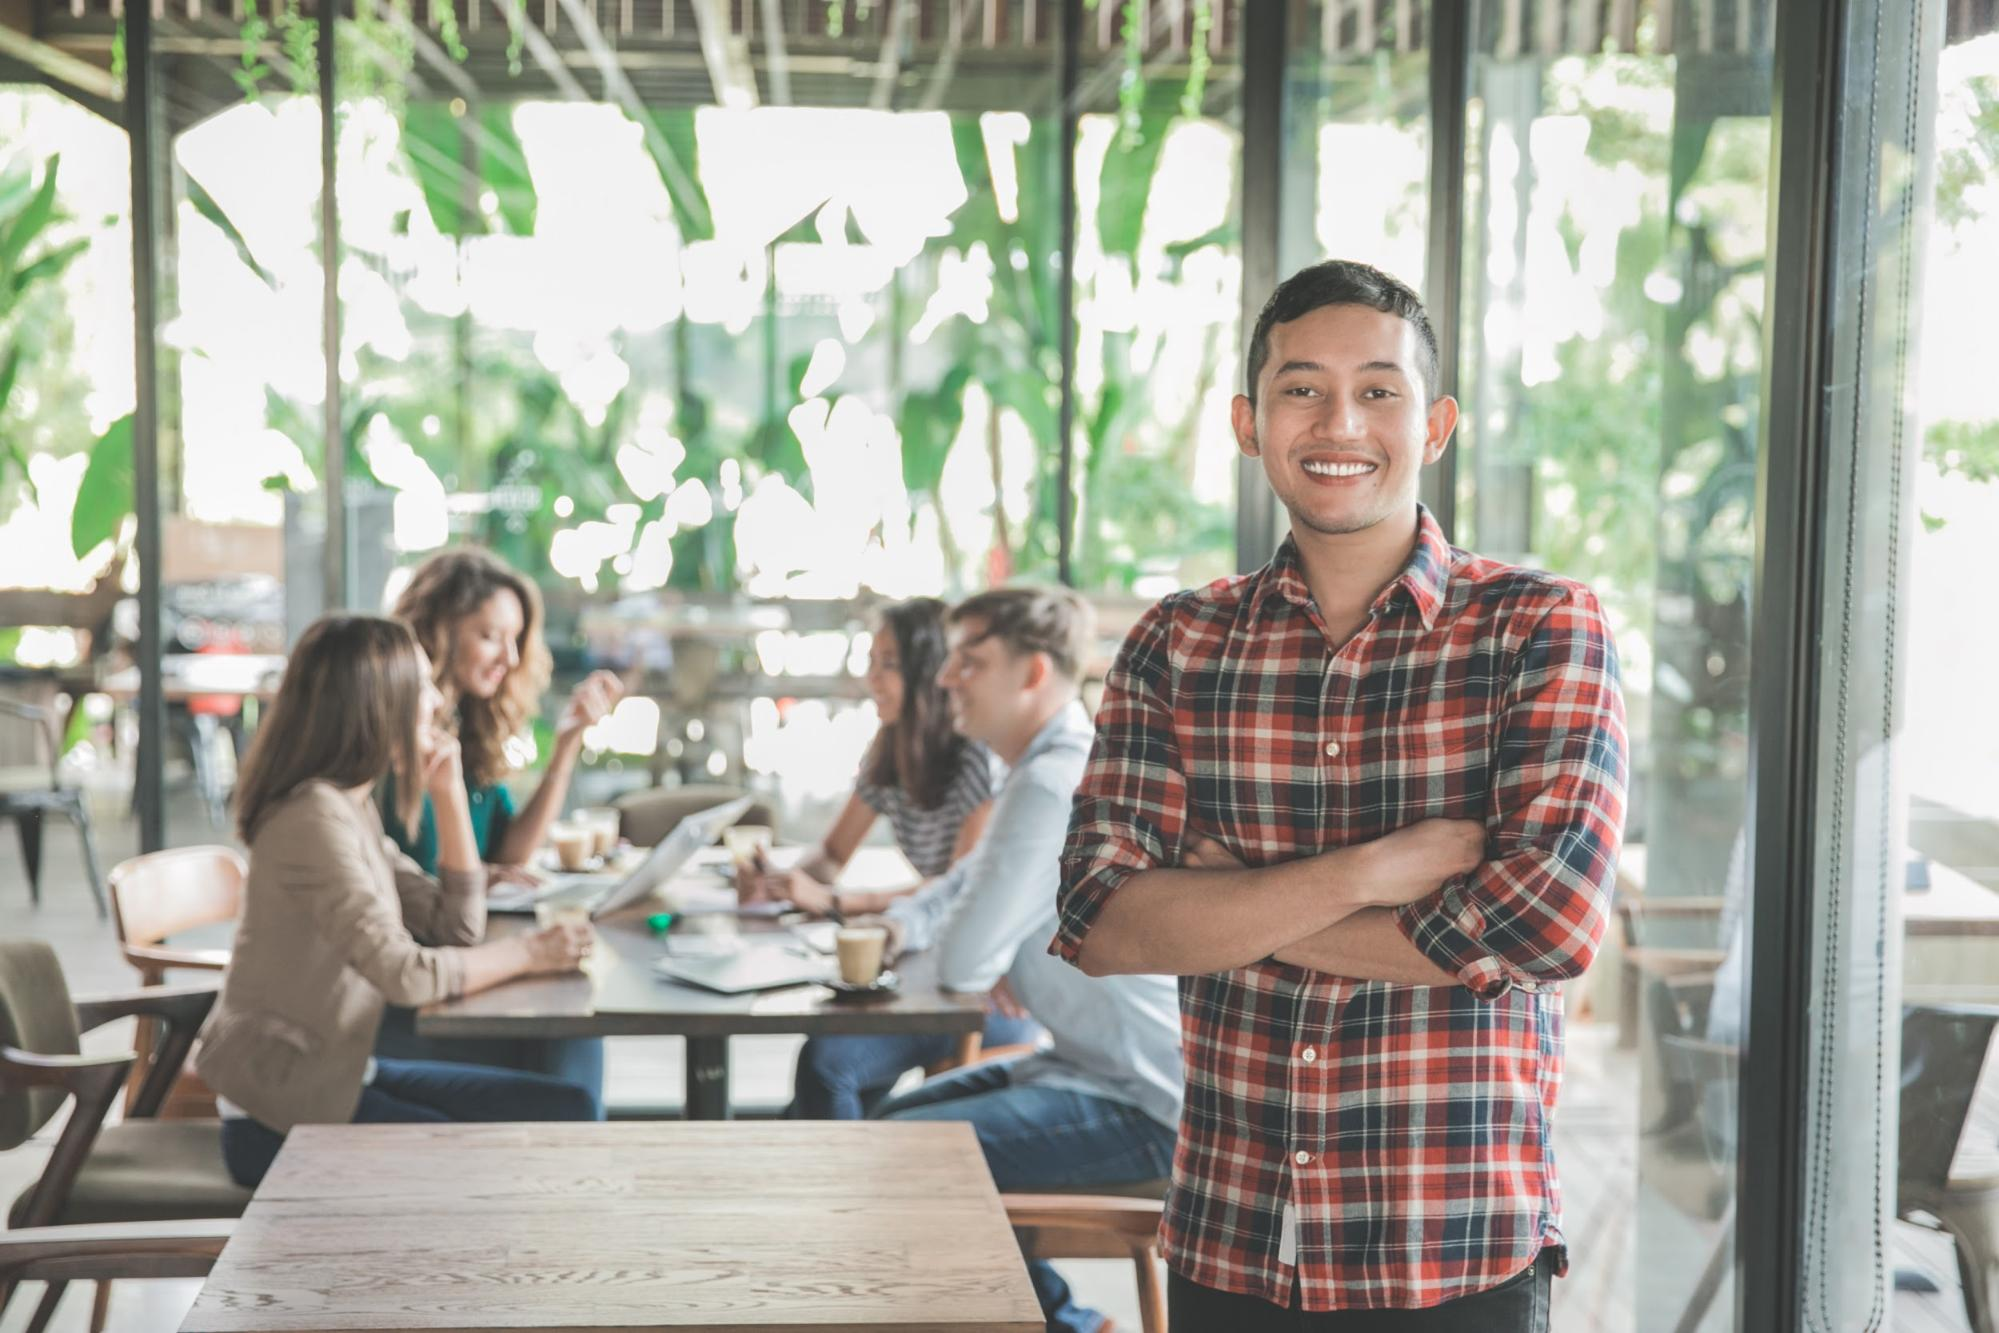 internships after graduation: Man smiling at the camera while his coworkers sit at a table behind him